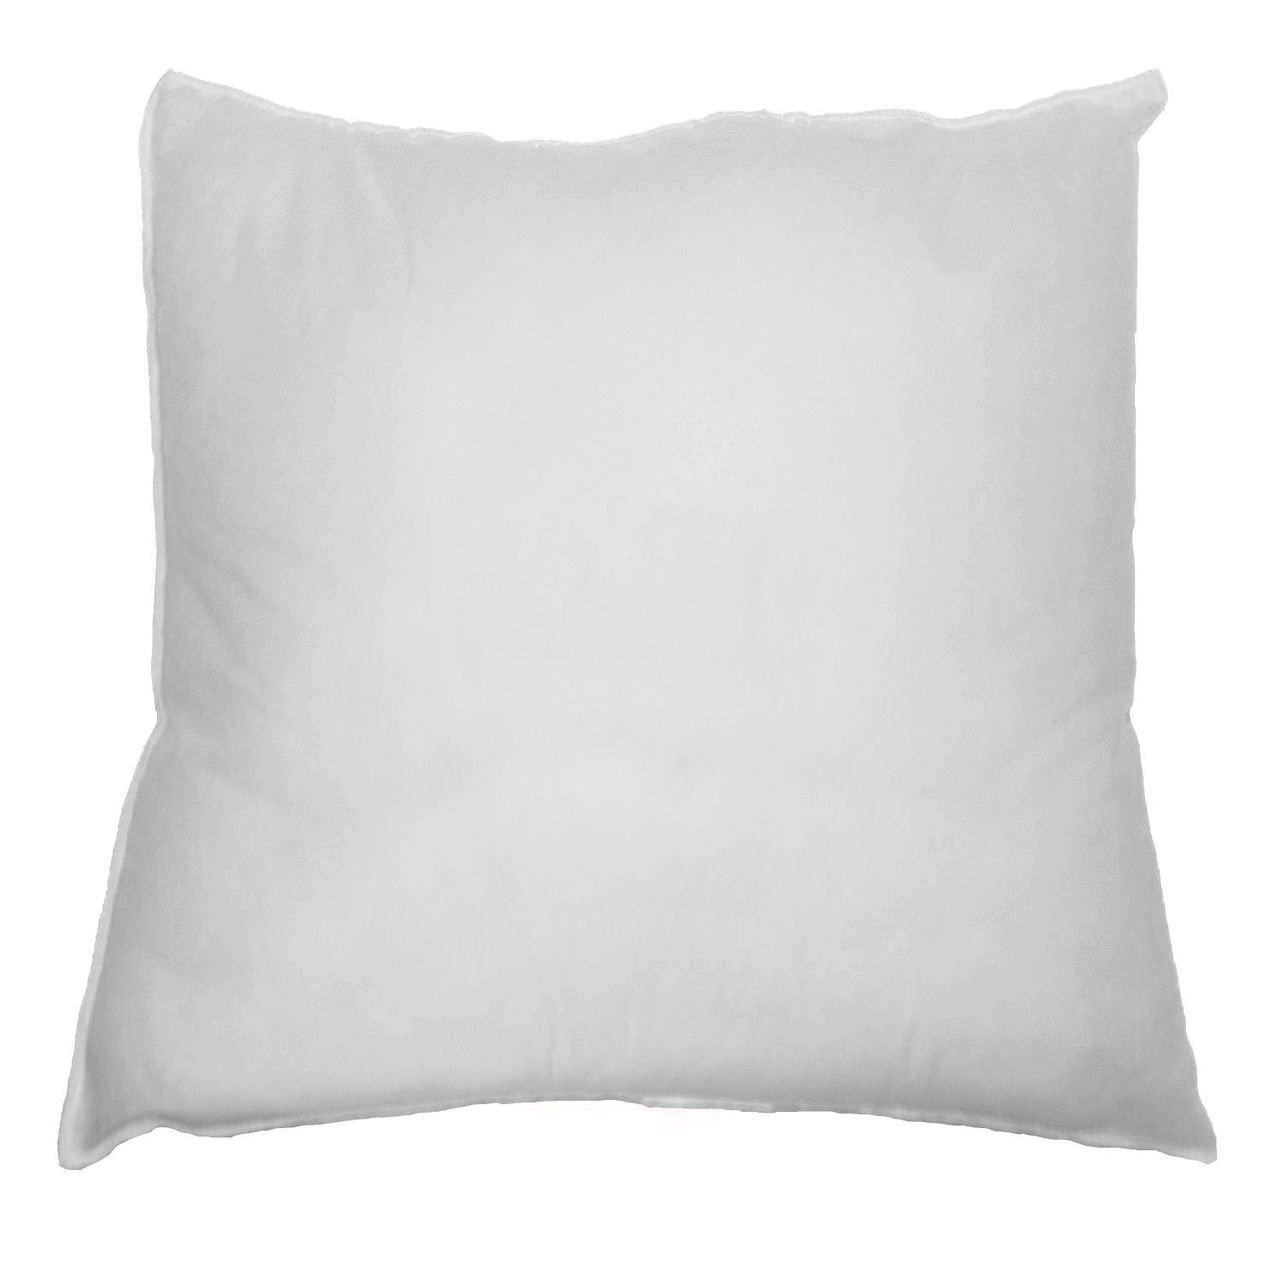 Ultrasoft Euro Square Decorative Sham Pillow White : euro pillow insert target Roselawnlutheran